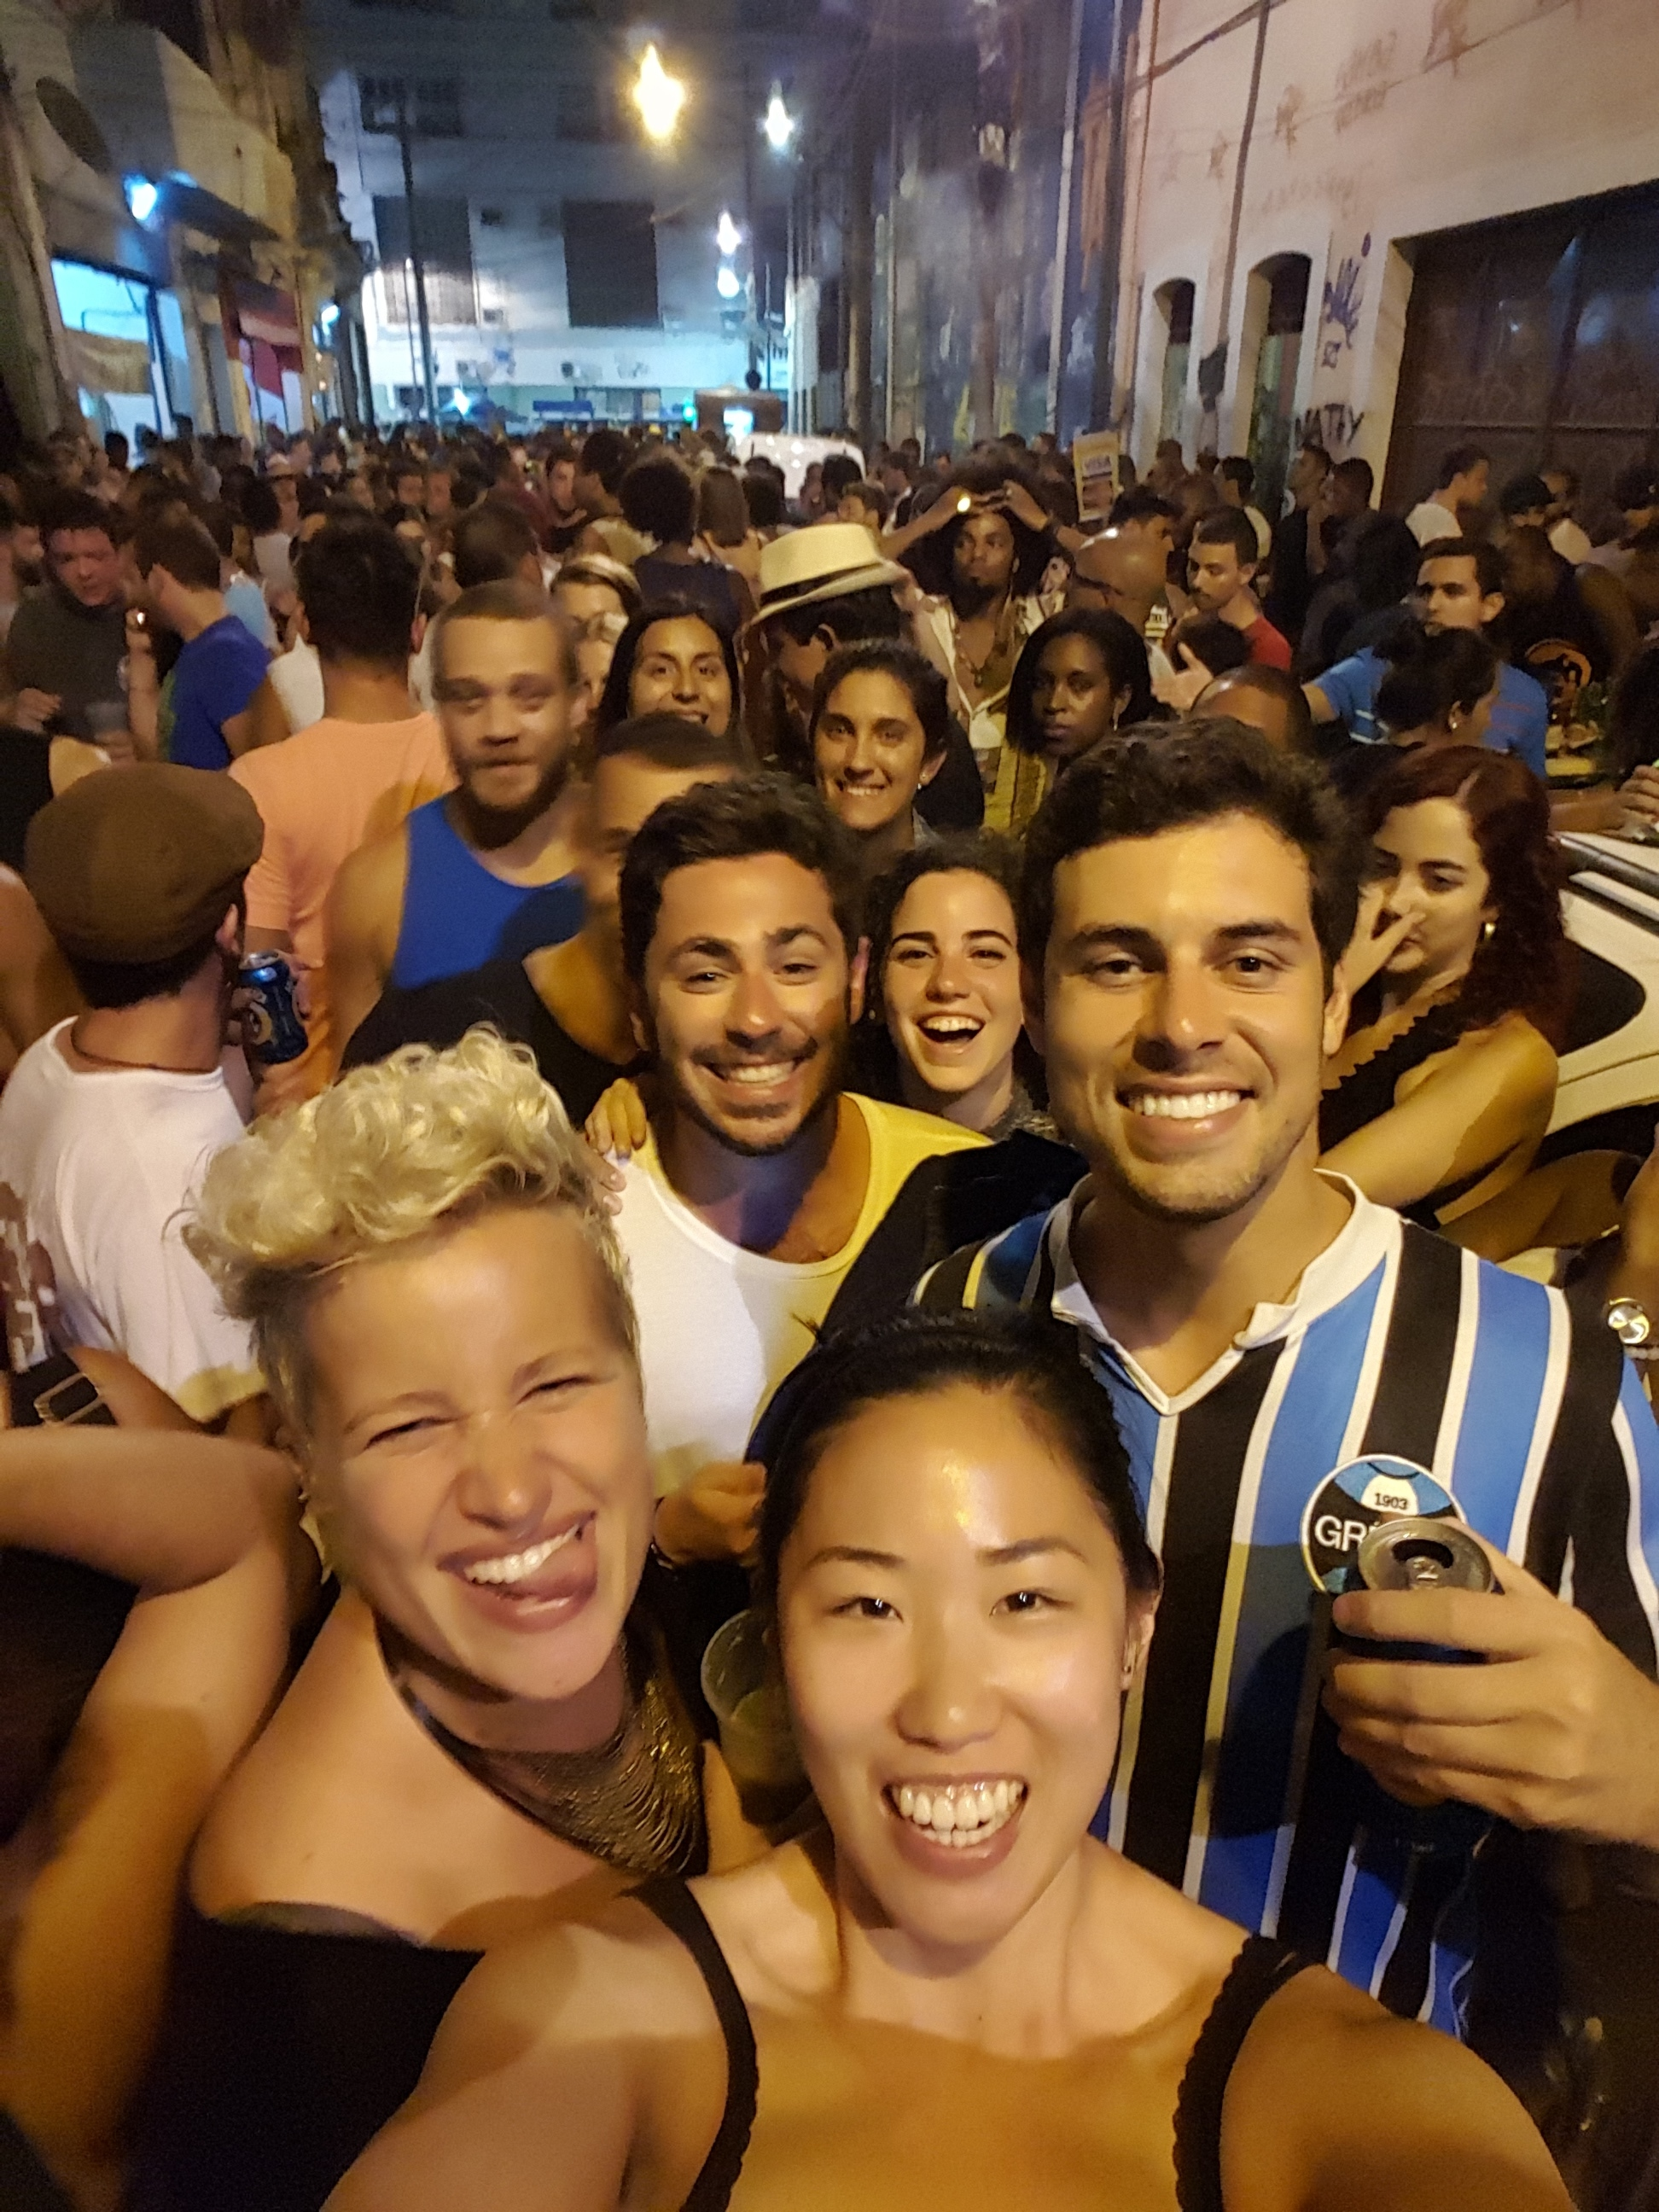 Crowded streets of Centro during Samba Party